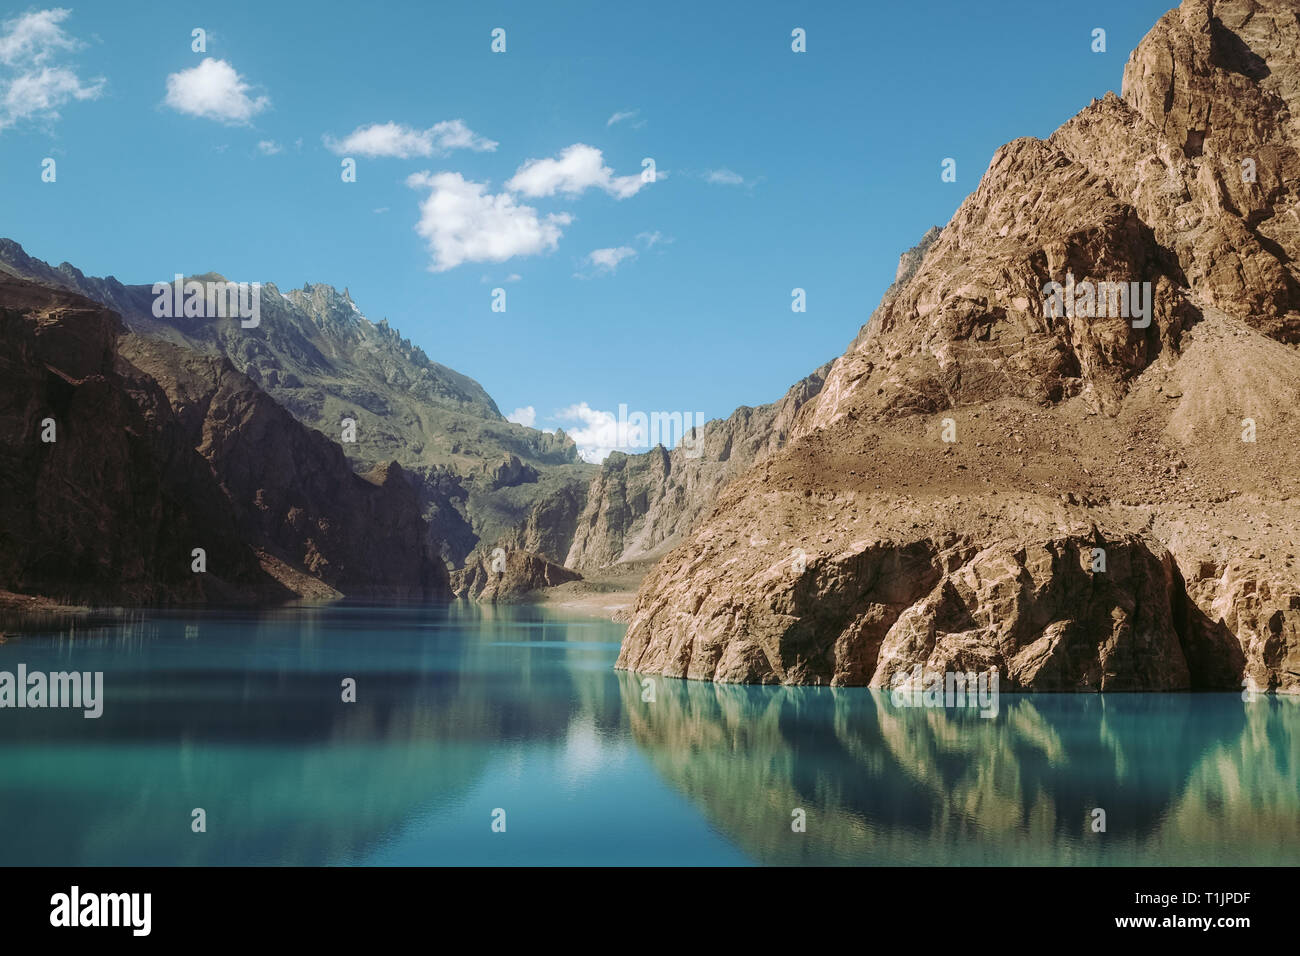 reflection in the water of Attabad Lake, surrounded by mountains in Karakoram range. Gojal Hunza, Gilgit Baltistan, Pakistan. - Stock Image